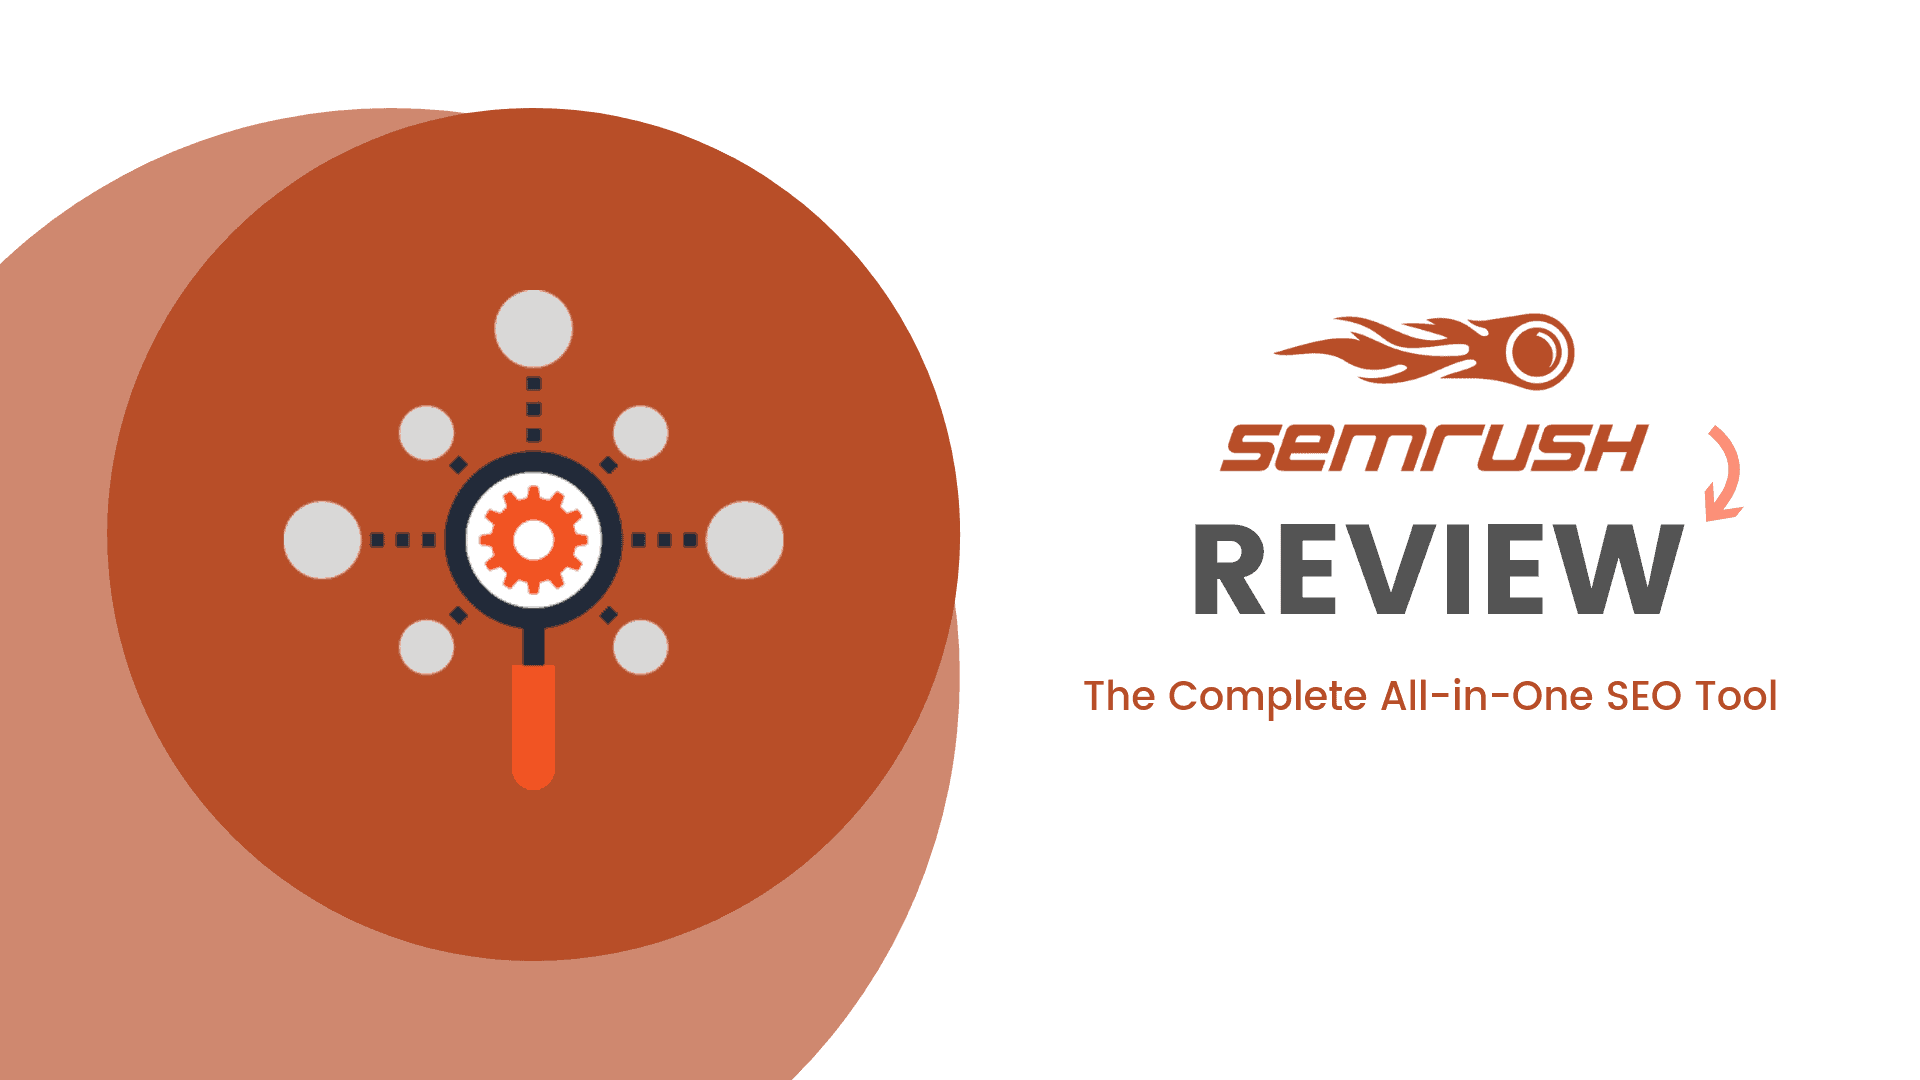 Seo Software Semrush Specials